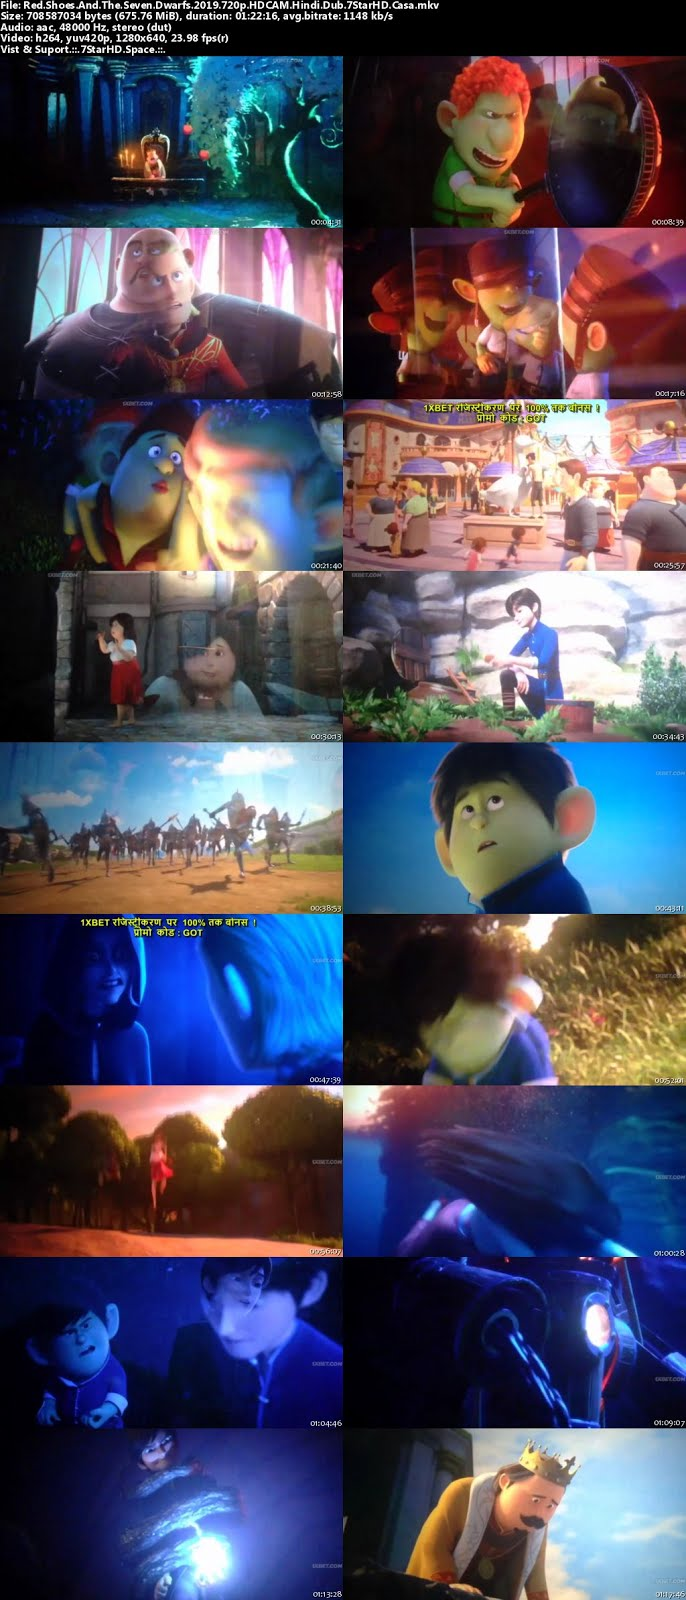 Red.Shoes.And.The.Seven.Dwarfs.2019.720p.HDCAM.Hindi.Dub.7StarHD.Casa s